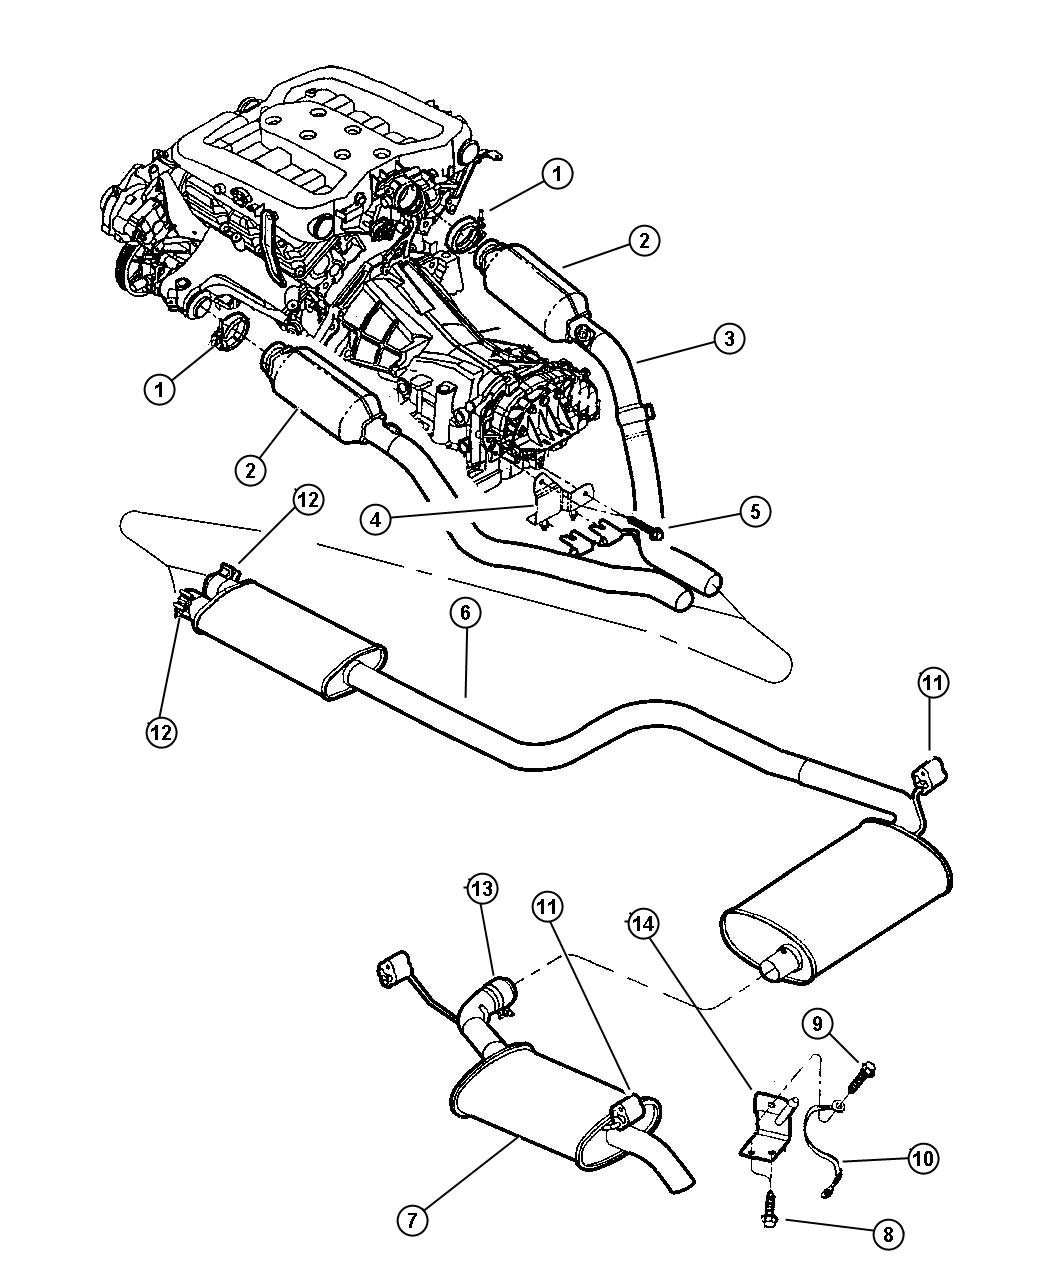 Chrysler Concorde Clamp. Exhaust Manifold. Exhaust